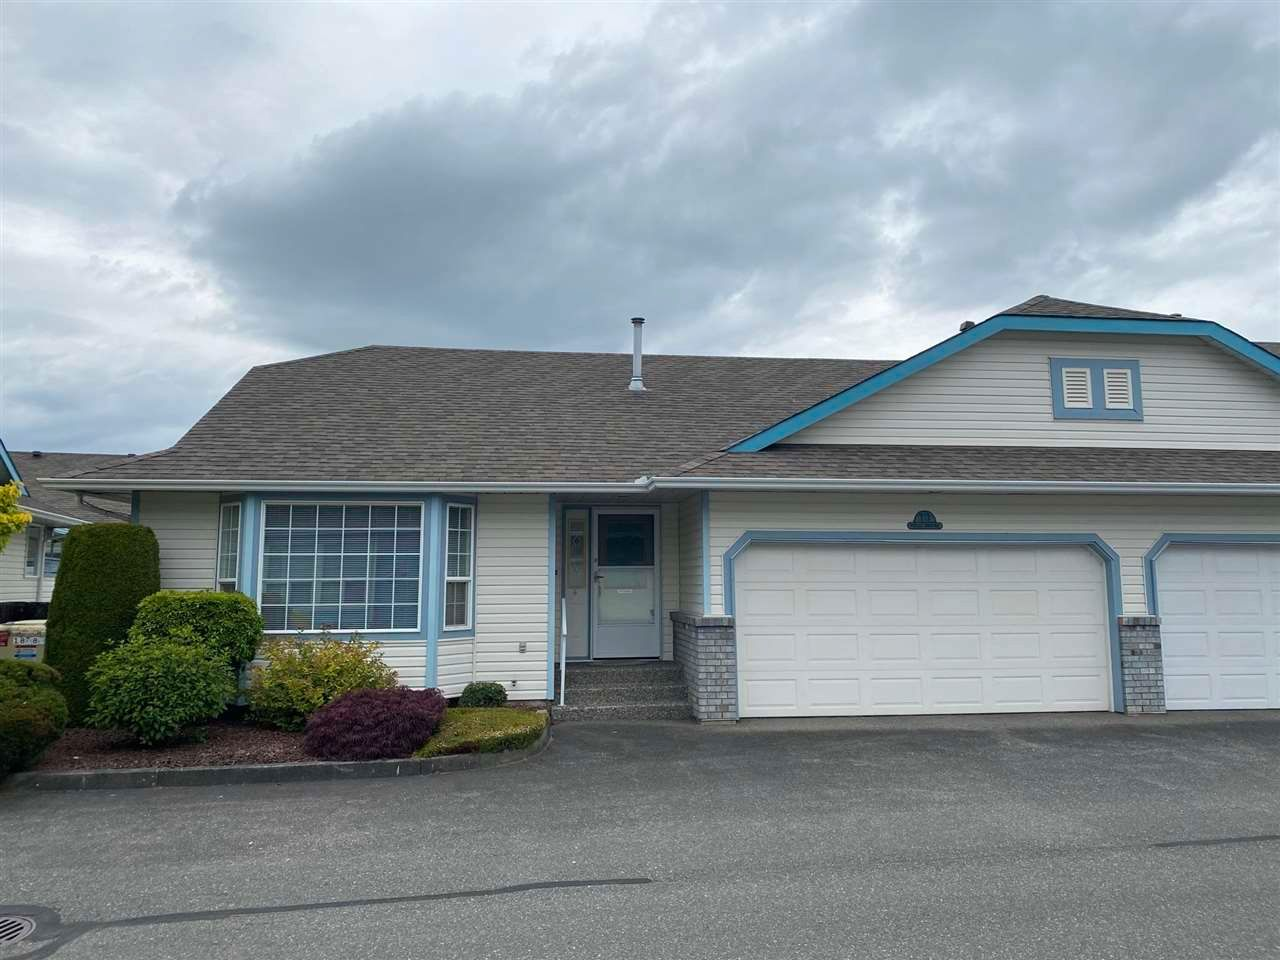 """Main Photo: 13 45175 WELLS Road in Chilliwack: Sardis West Vedder Rd Townhouse for sale in """"Wellsbrooke"""" (Sardis)  : MLS®# R2585586"""